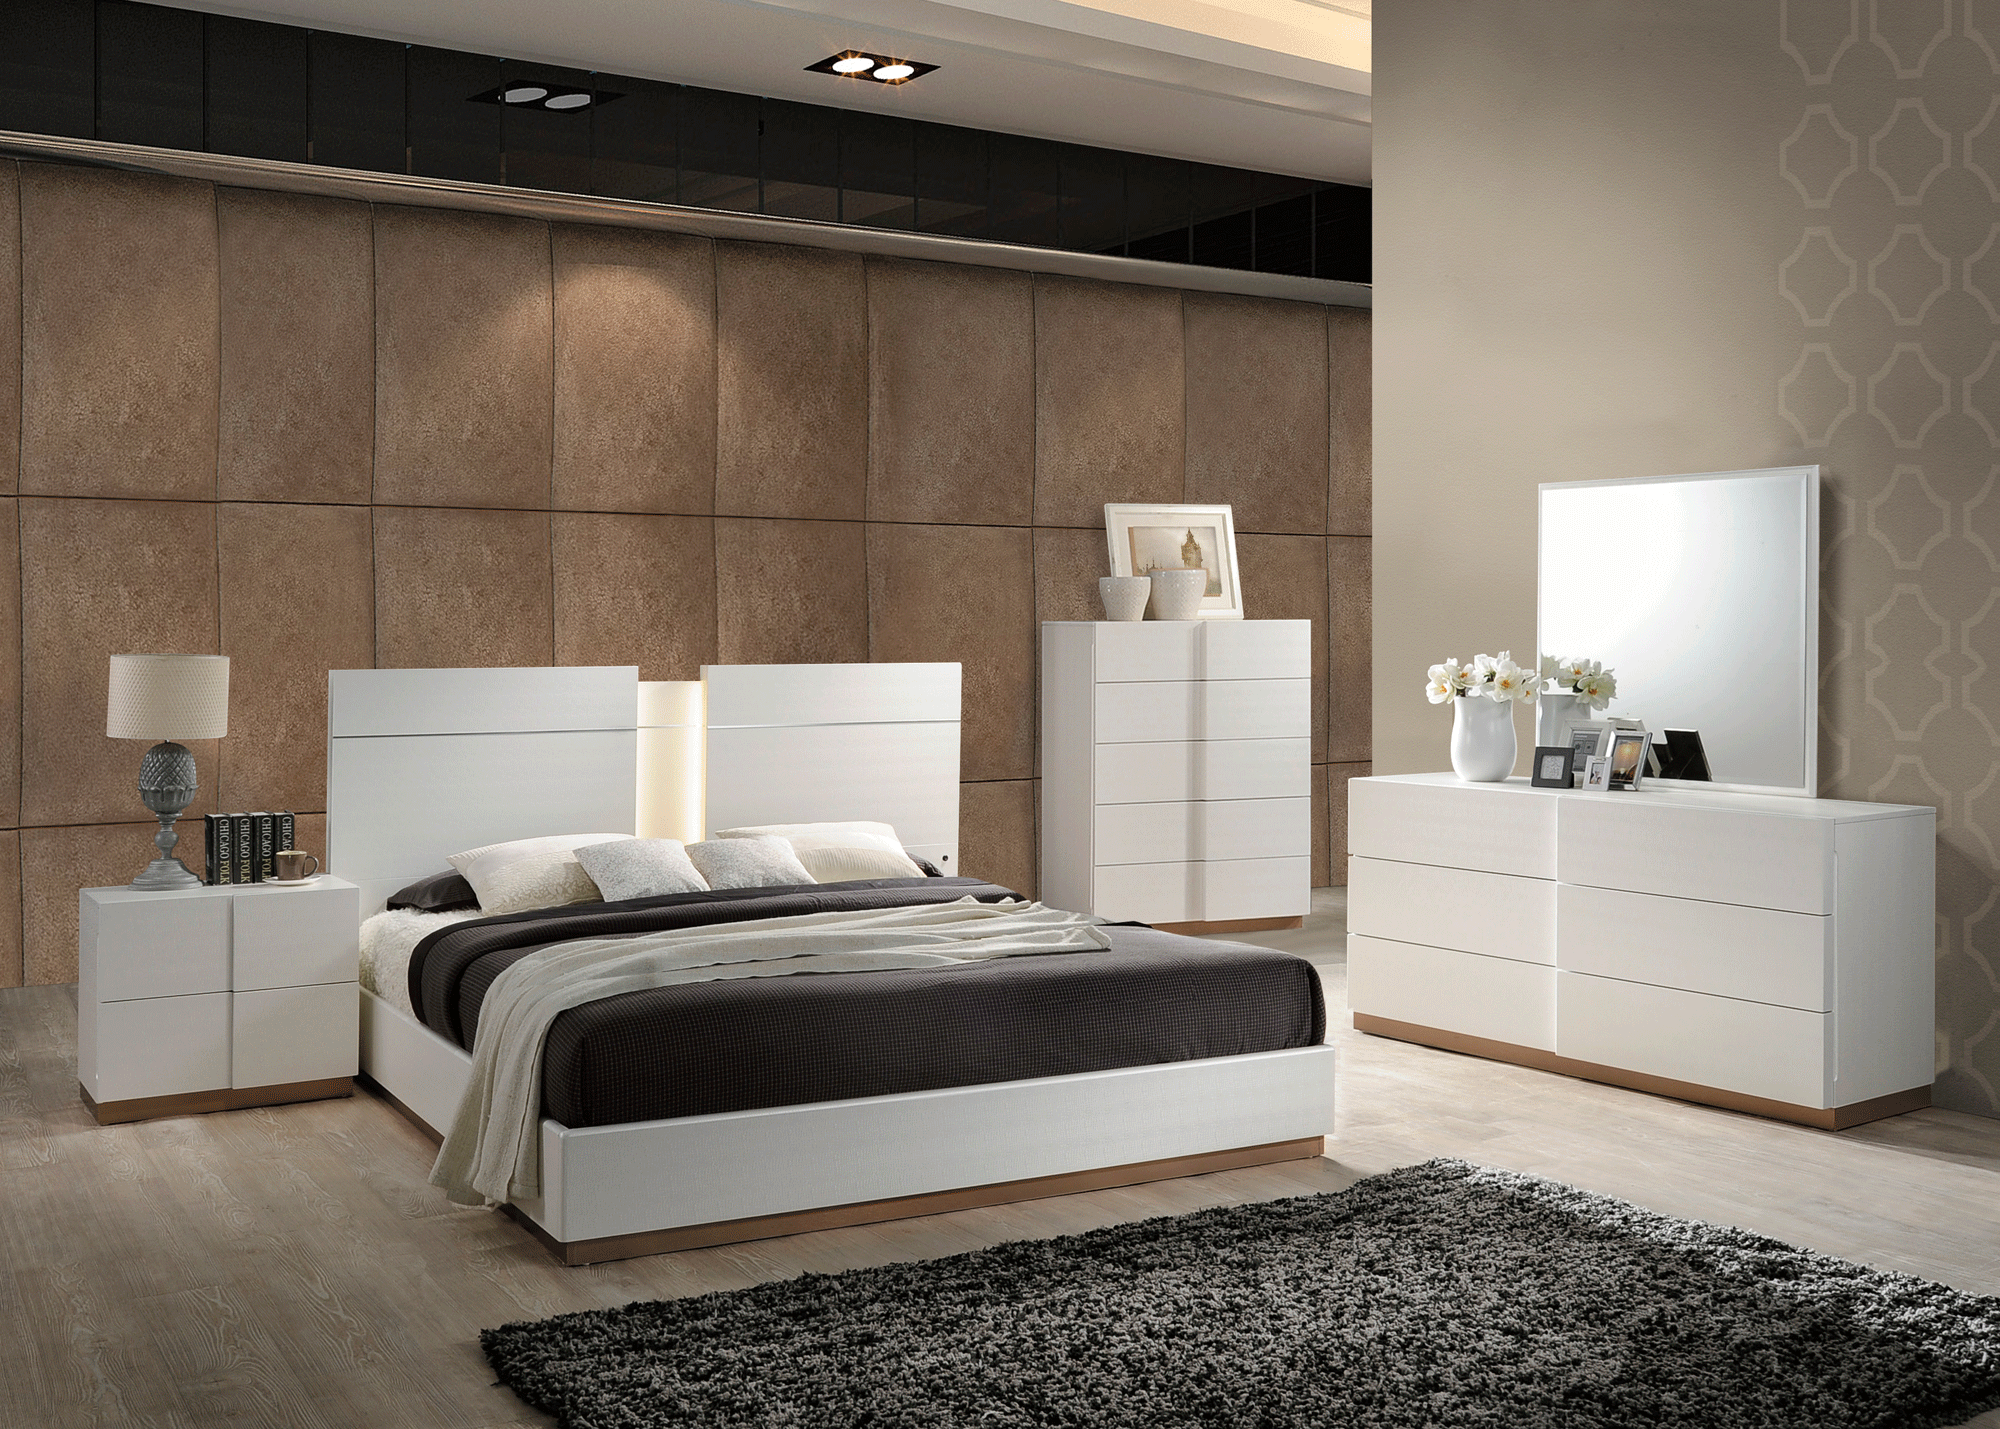 Paris Leather Cream Bedroom Set w 8119 Cream PU Bed by Global Furniture